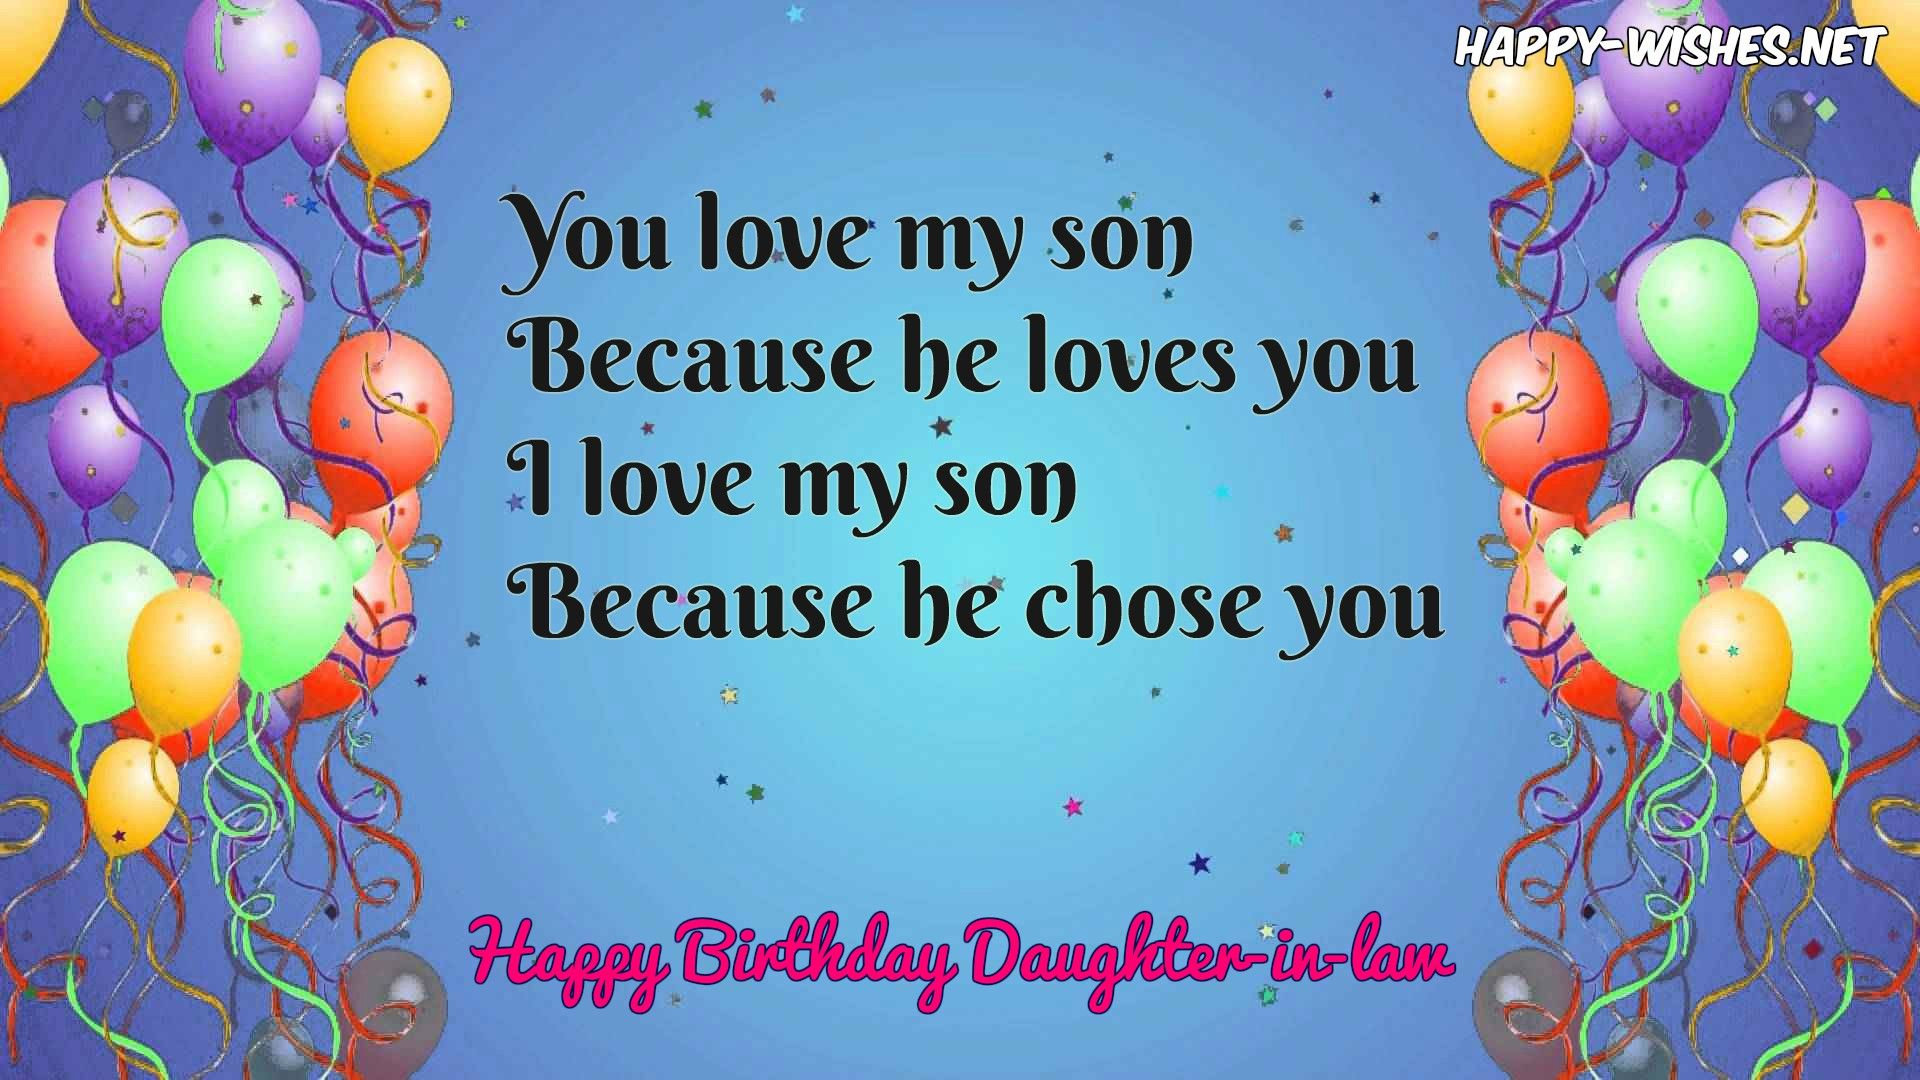 Happy birthday wishes for daughterinlaw quotes